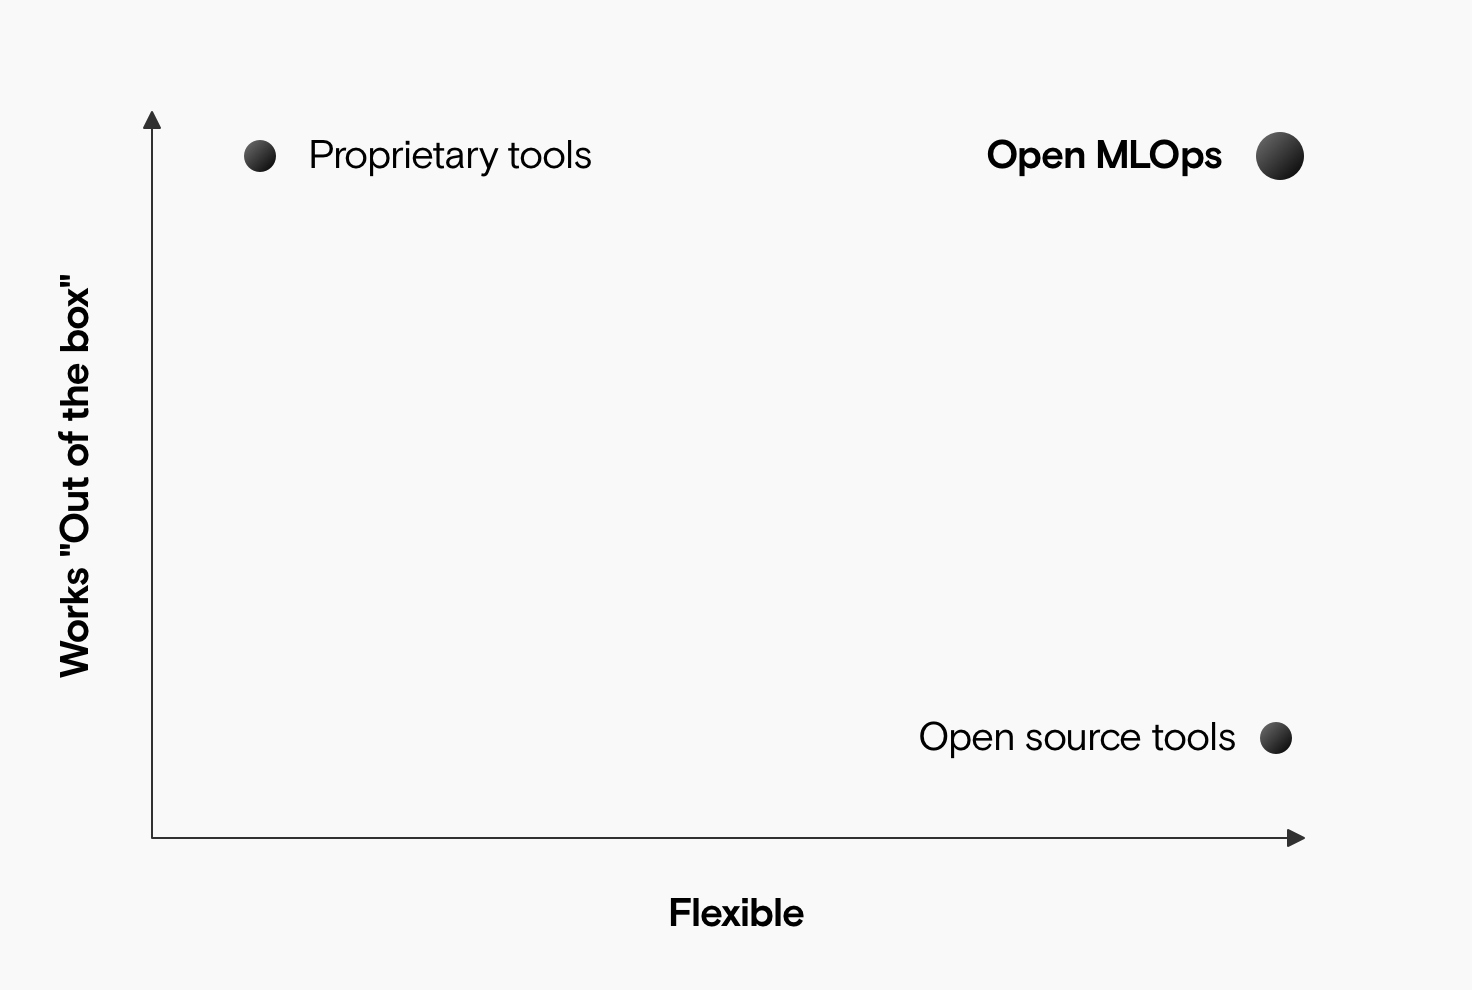 A graph showing flexible on the x-axis and works out of the box on the y-axis. Open MLOps is in the top right, proprietary tools in the top left and open source tools in the bottom right.